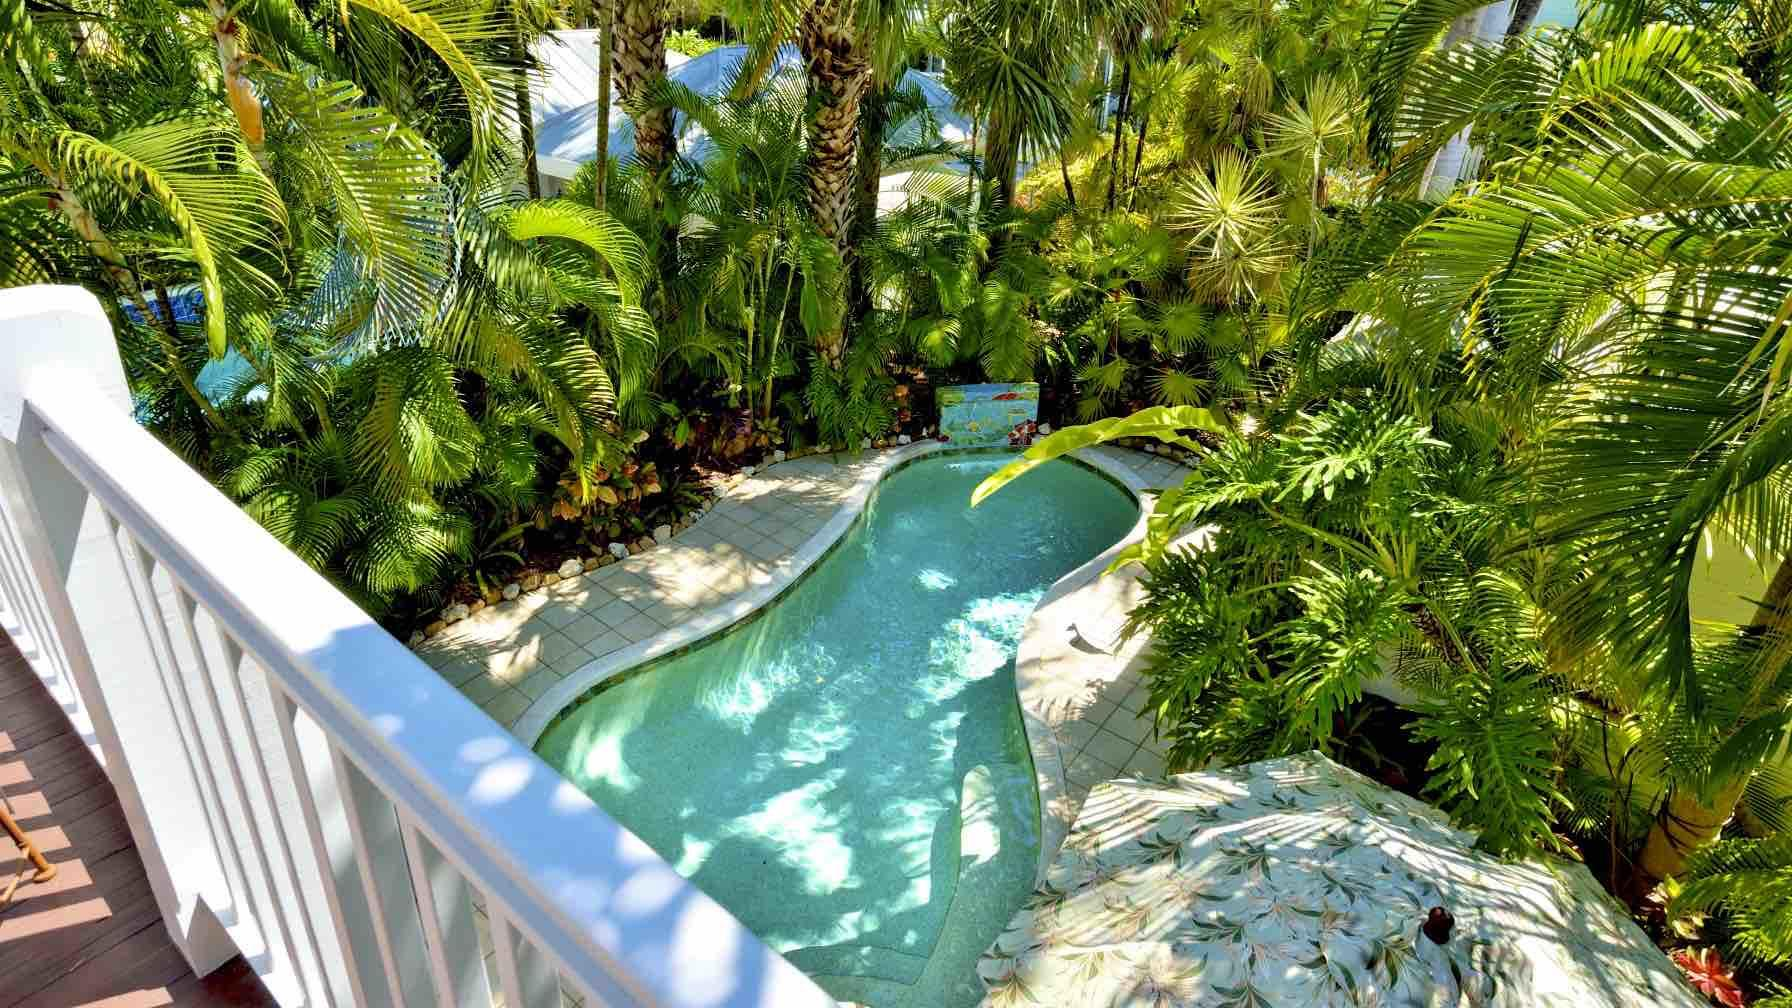 The view from the master bedroom balcony, looking down on the private pool area...